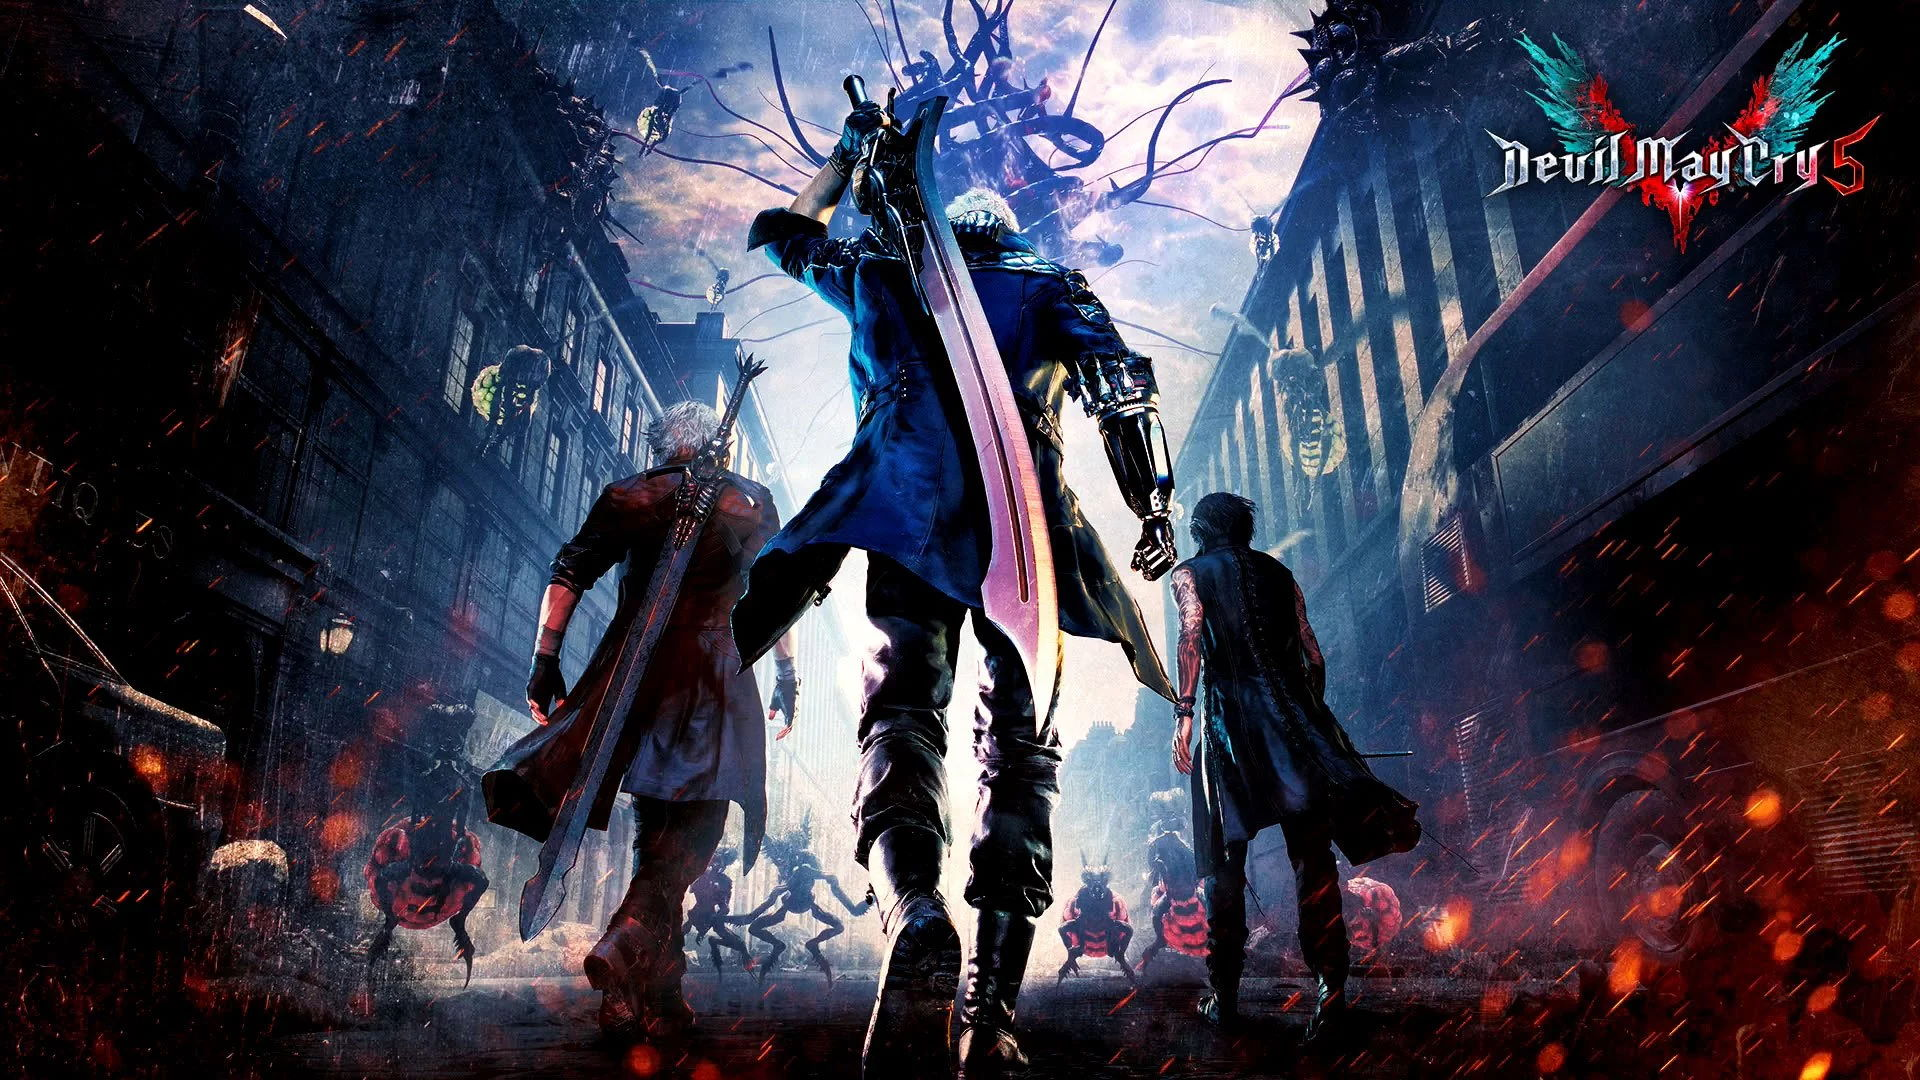 devil-may-cry-5-special-edition-graphics.jpg